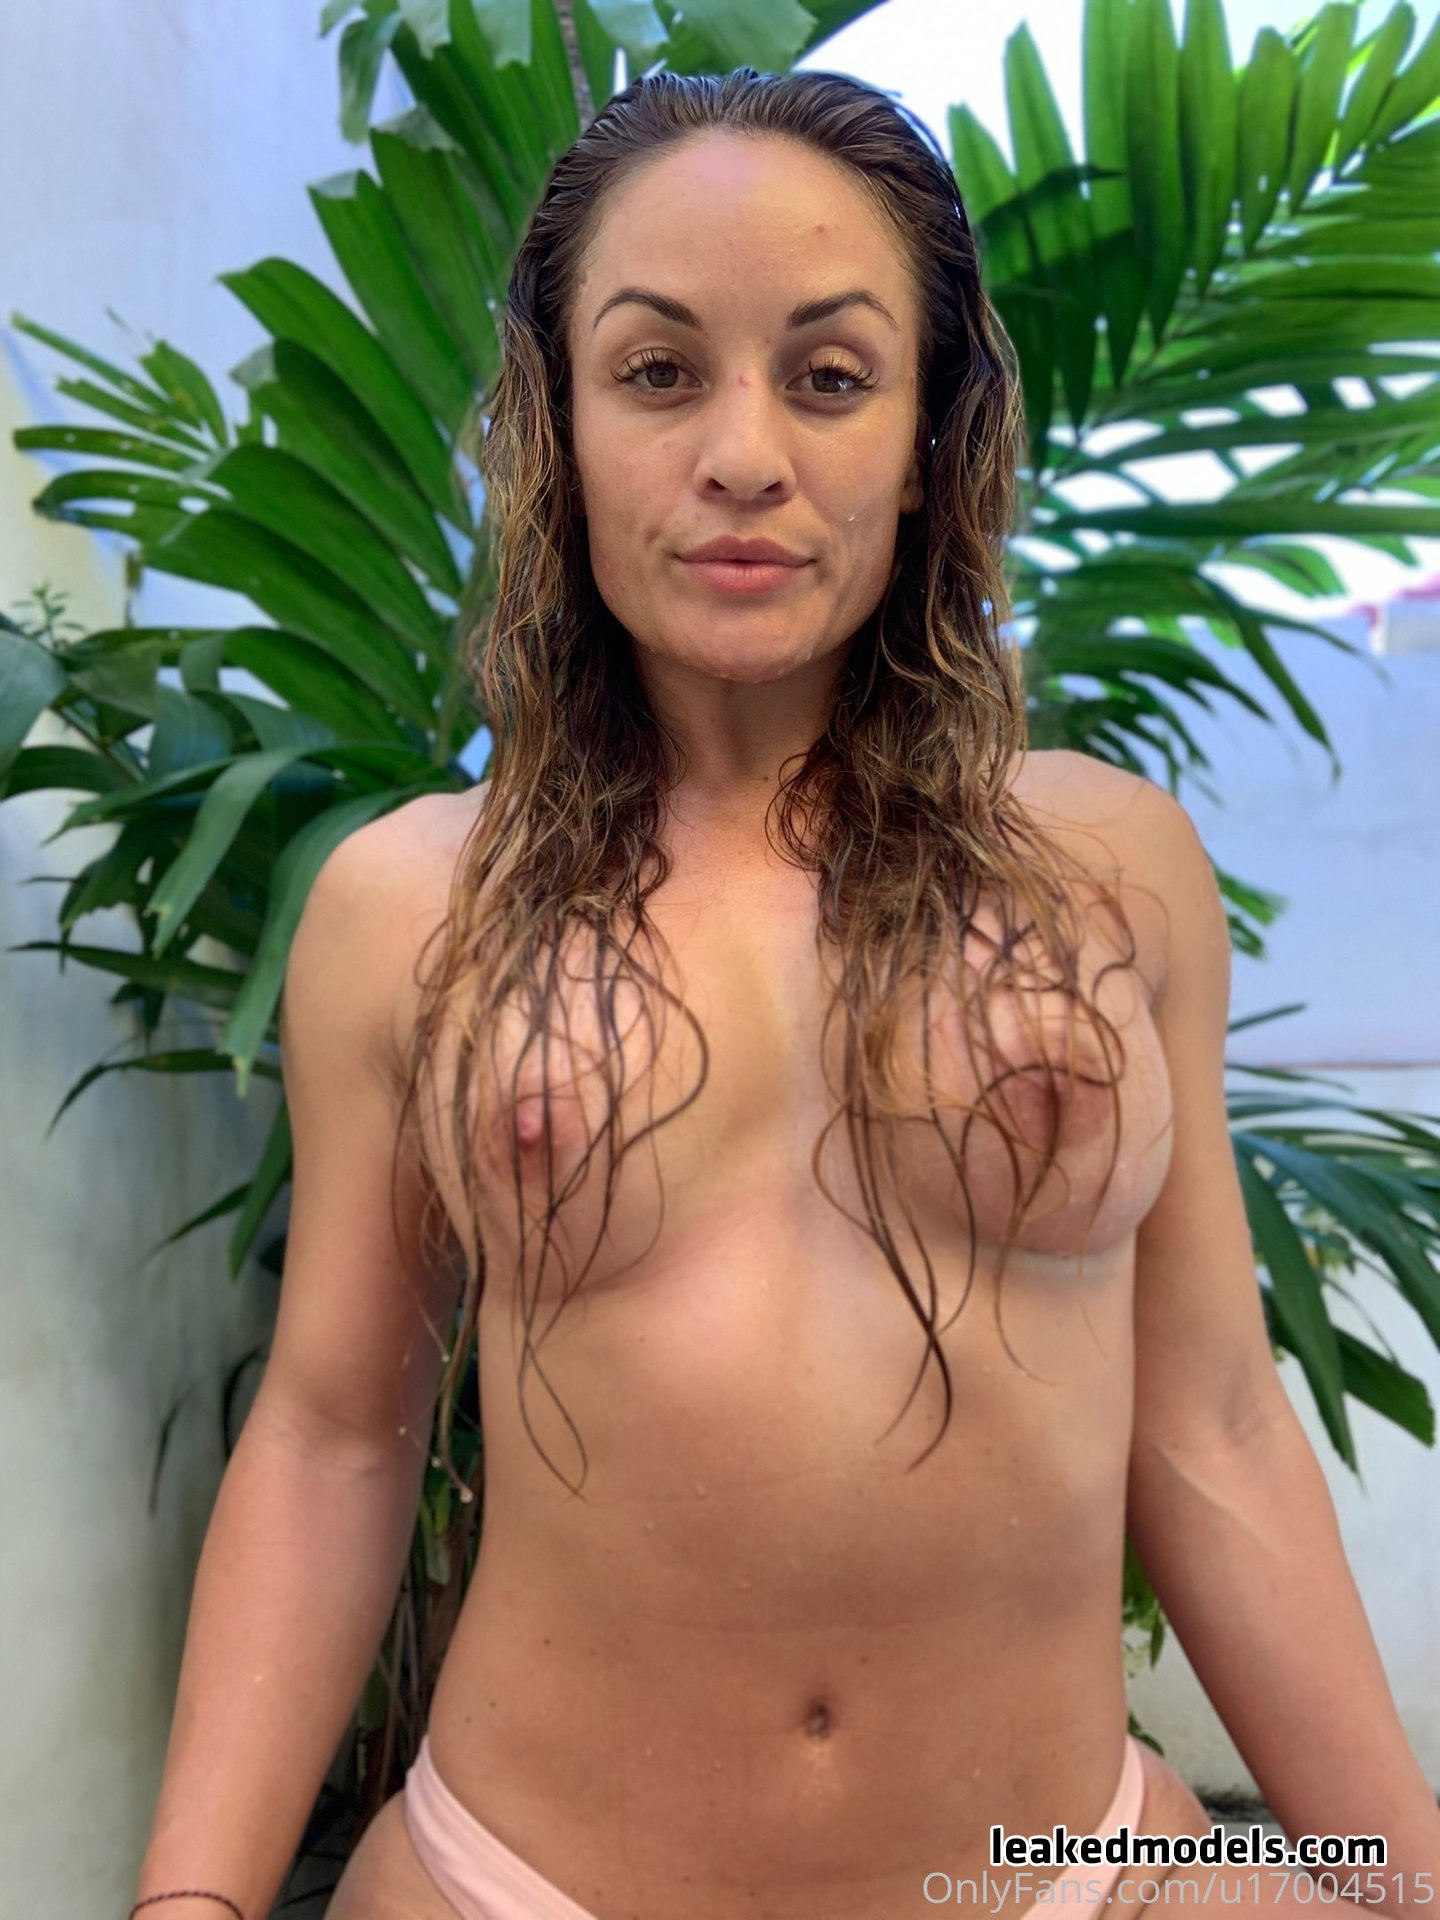 taiemery OnlyFans Nude Leaks (40 Photos)